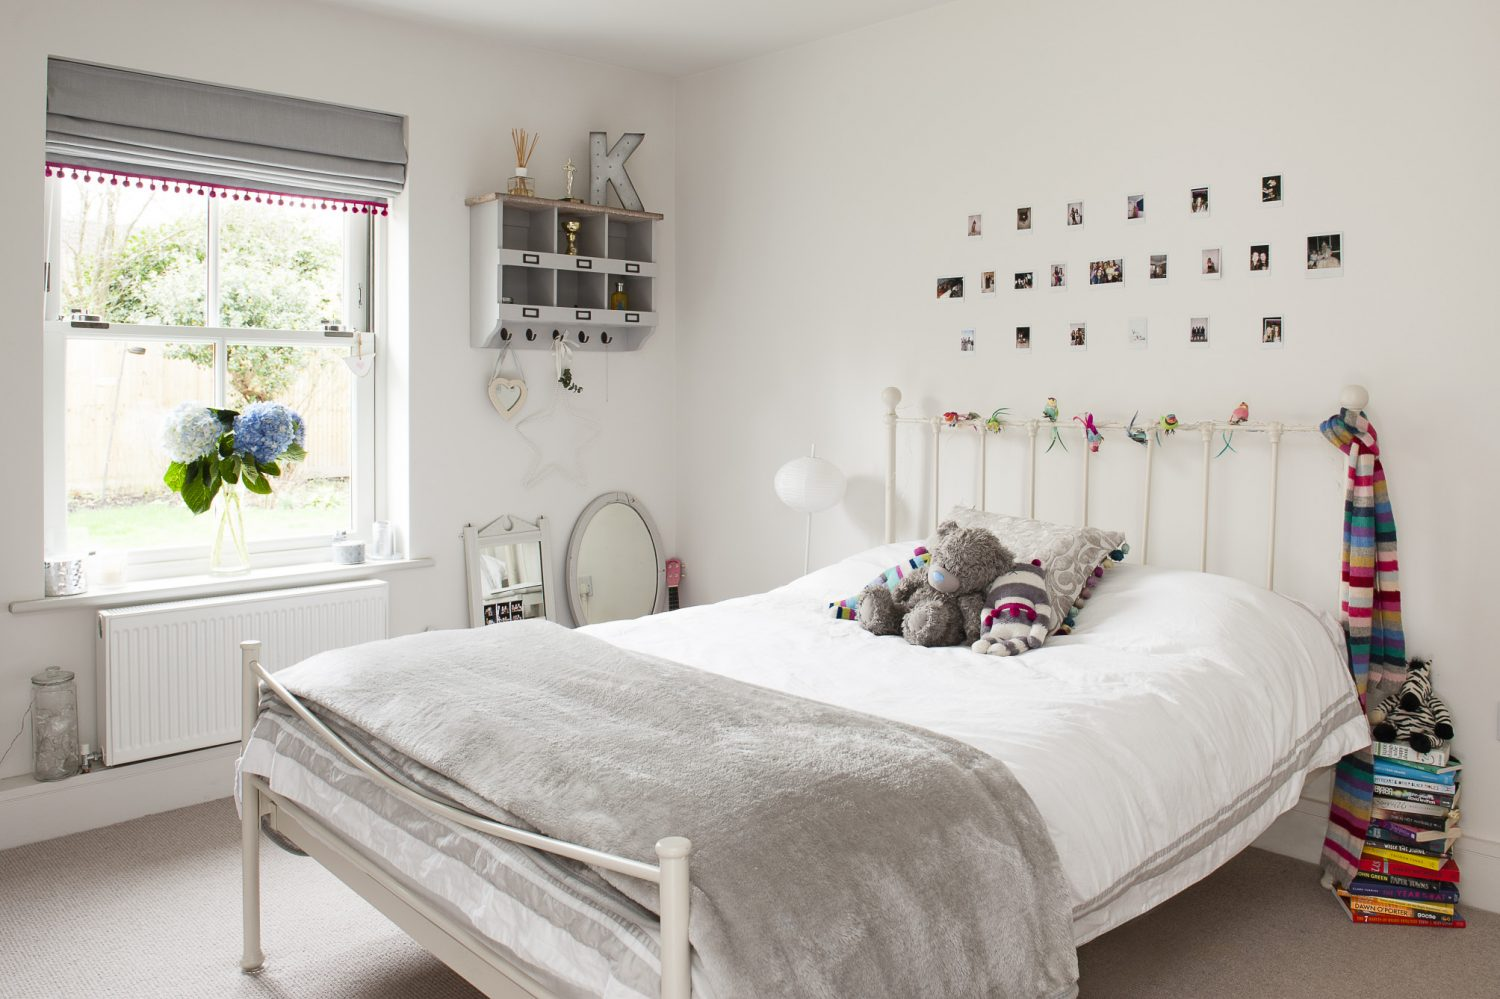 Katie's room is remarkably tidy. The pink pom-pom trim on the blinds is a recent addition that matches her pink chair